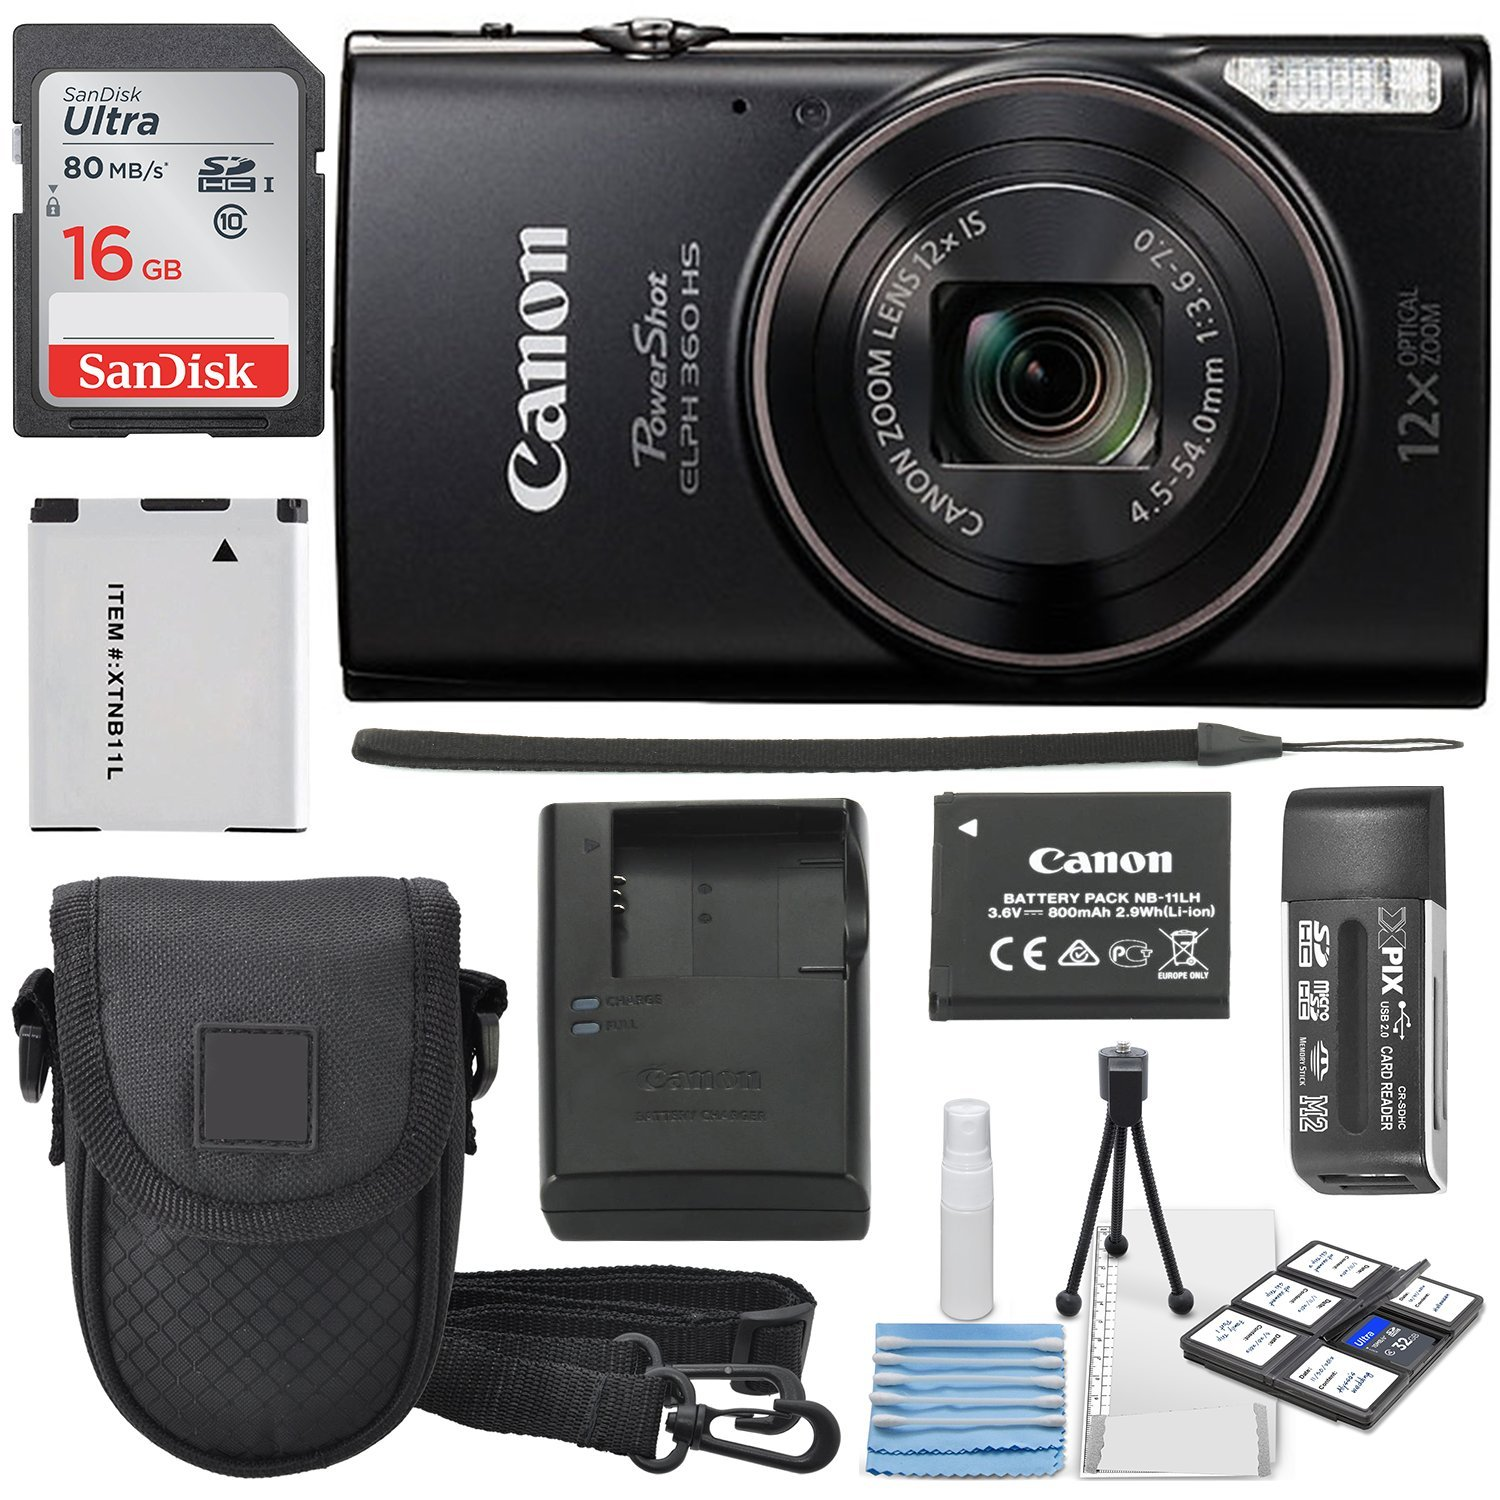 Canon PowerShot ELPH 360 HS (BLACK ) with 12x Optical Zoom and Built-In Wi-Fi with Deluxe Starter Kit Including 16 GB SDHC Class10 + Extra battery + Protective Camera Case by Canon